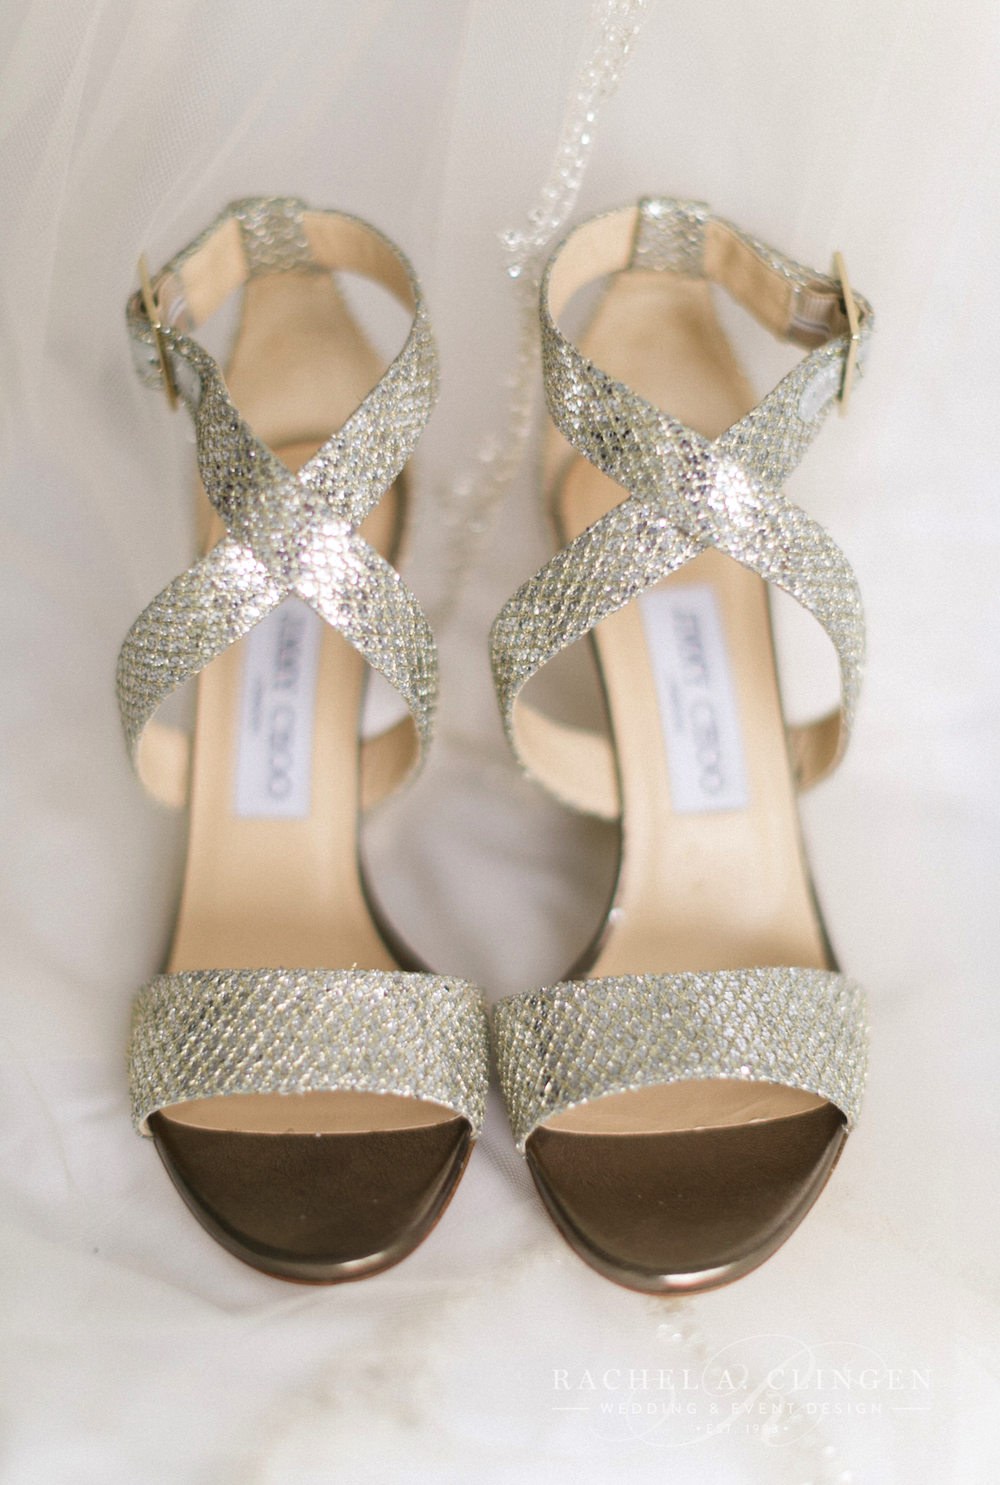 Jimmy Choo Bridal Shoes   Wedding Decor Toronto Rachel A. Clingen Wedding U0026  Event Design